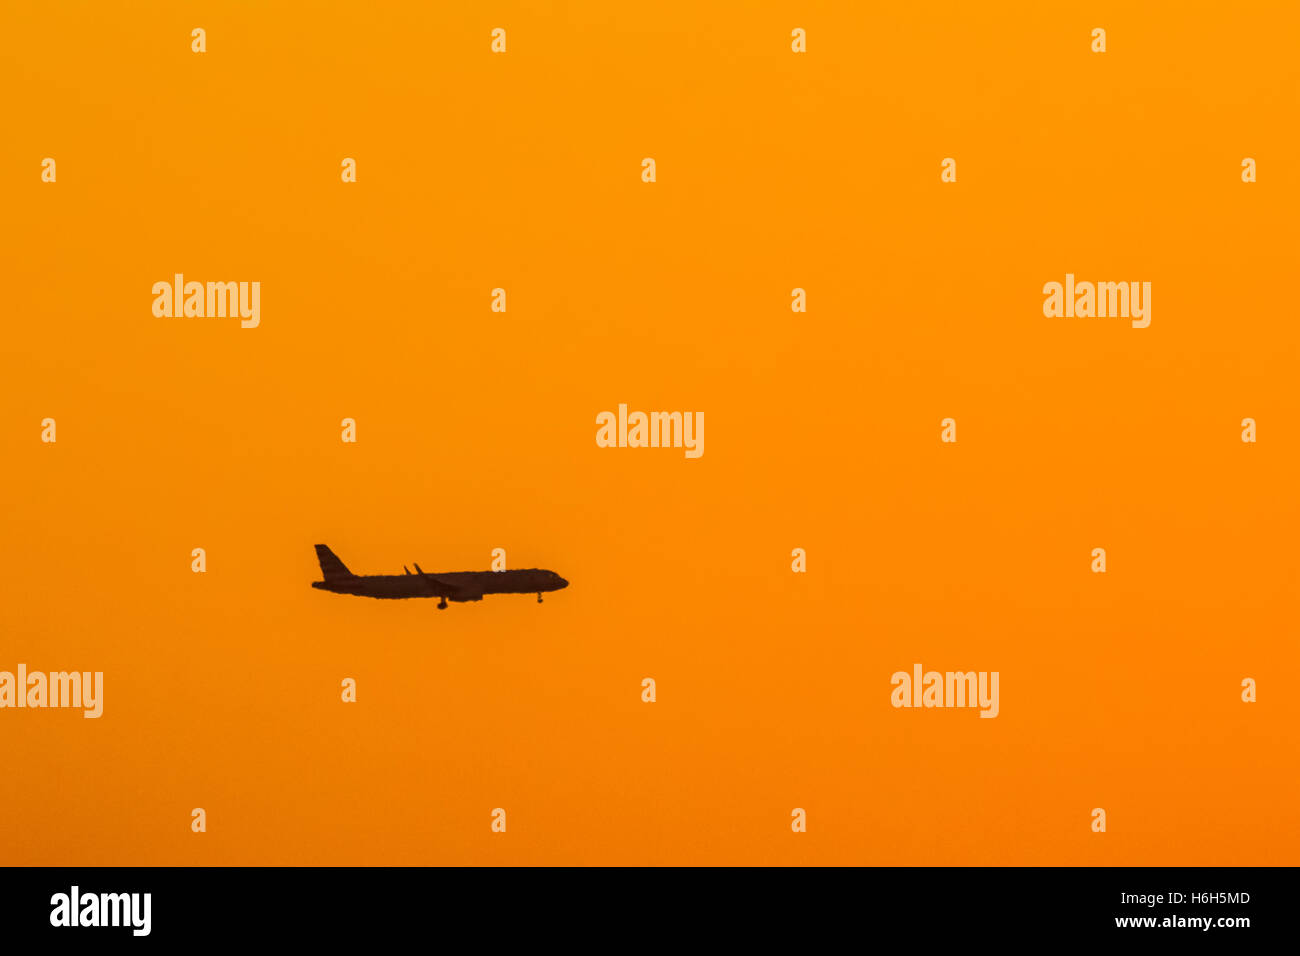 Commercial Airliner On Morning Approach - Stock Image